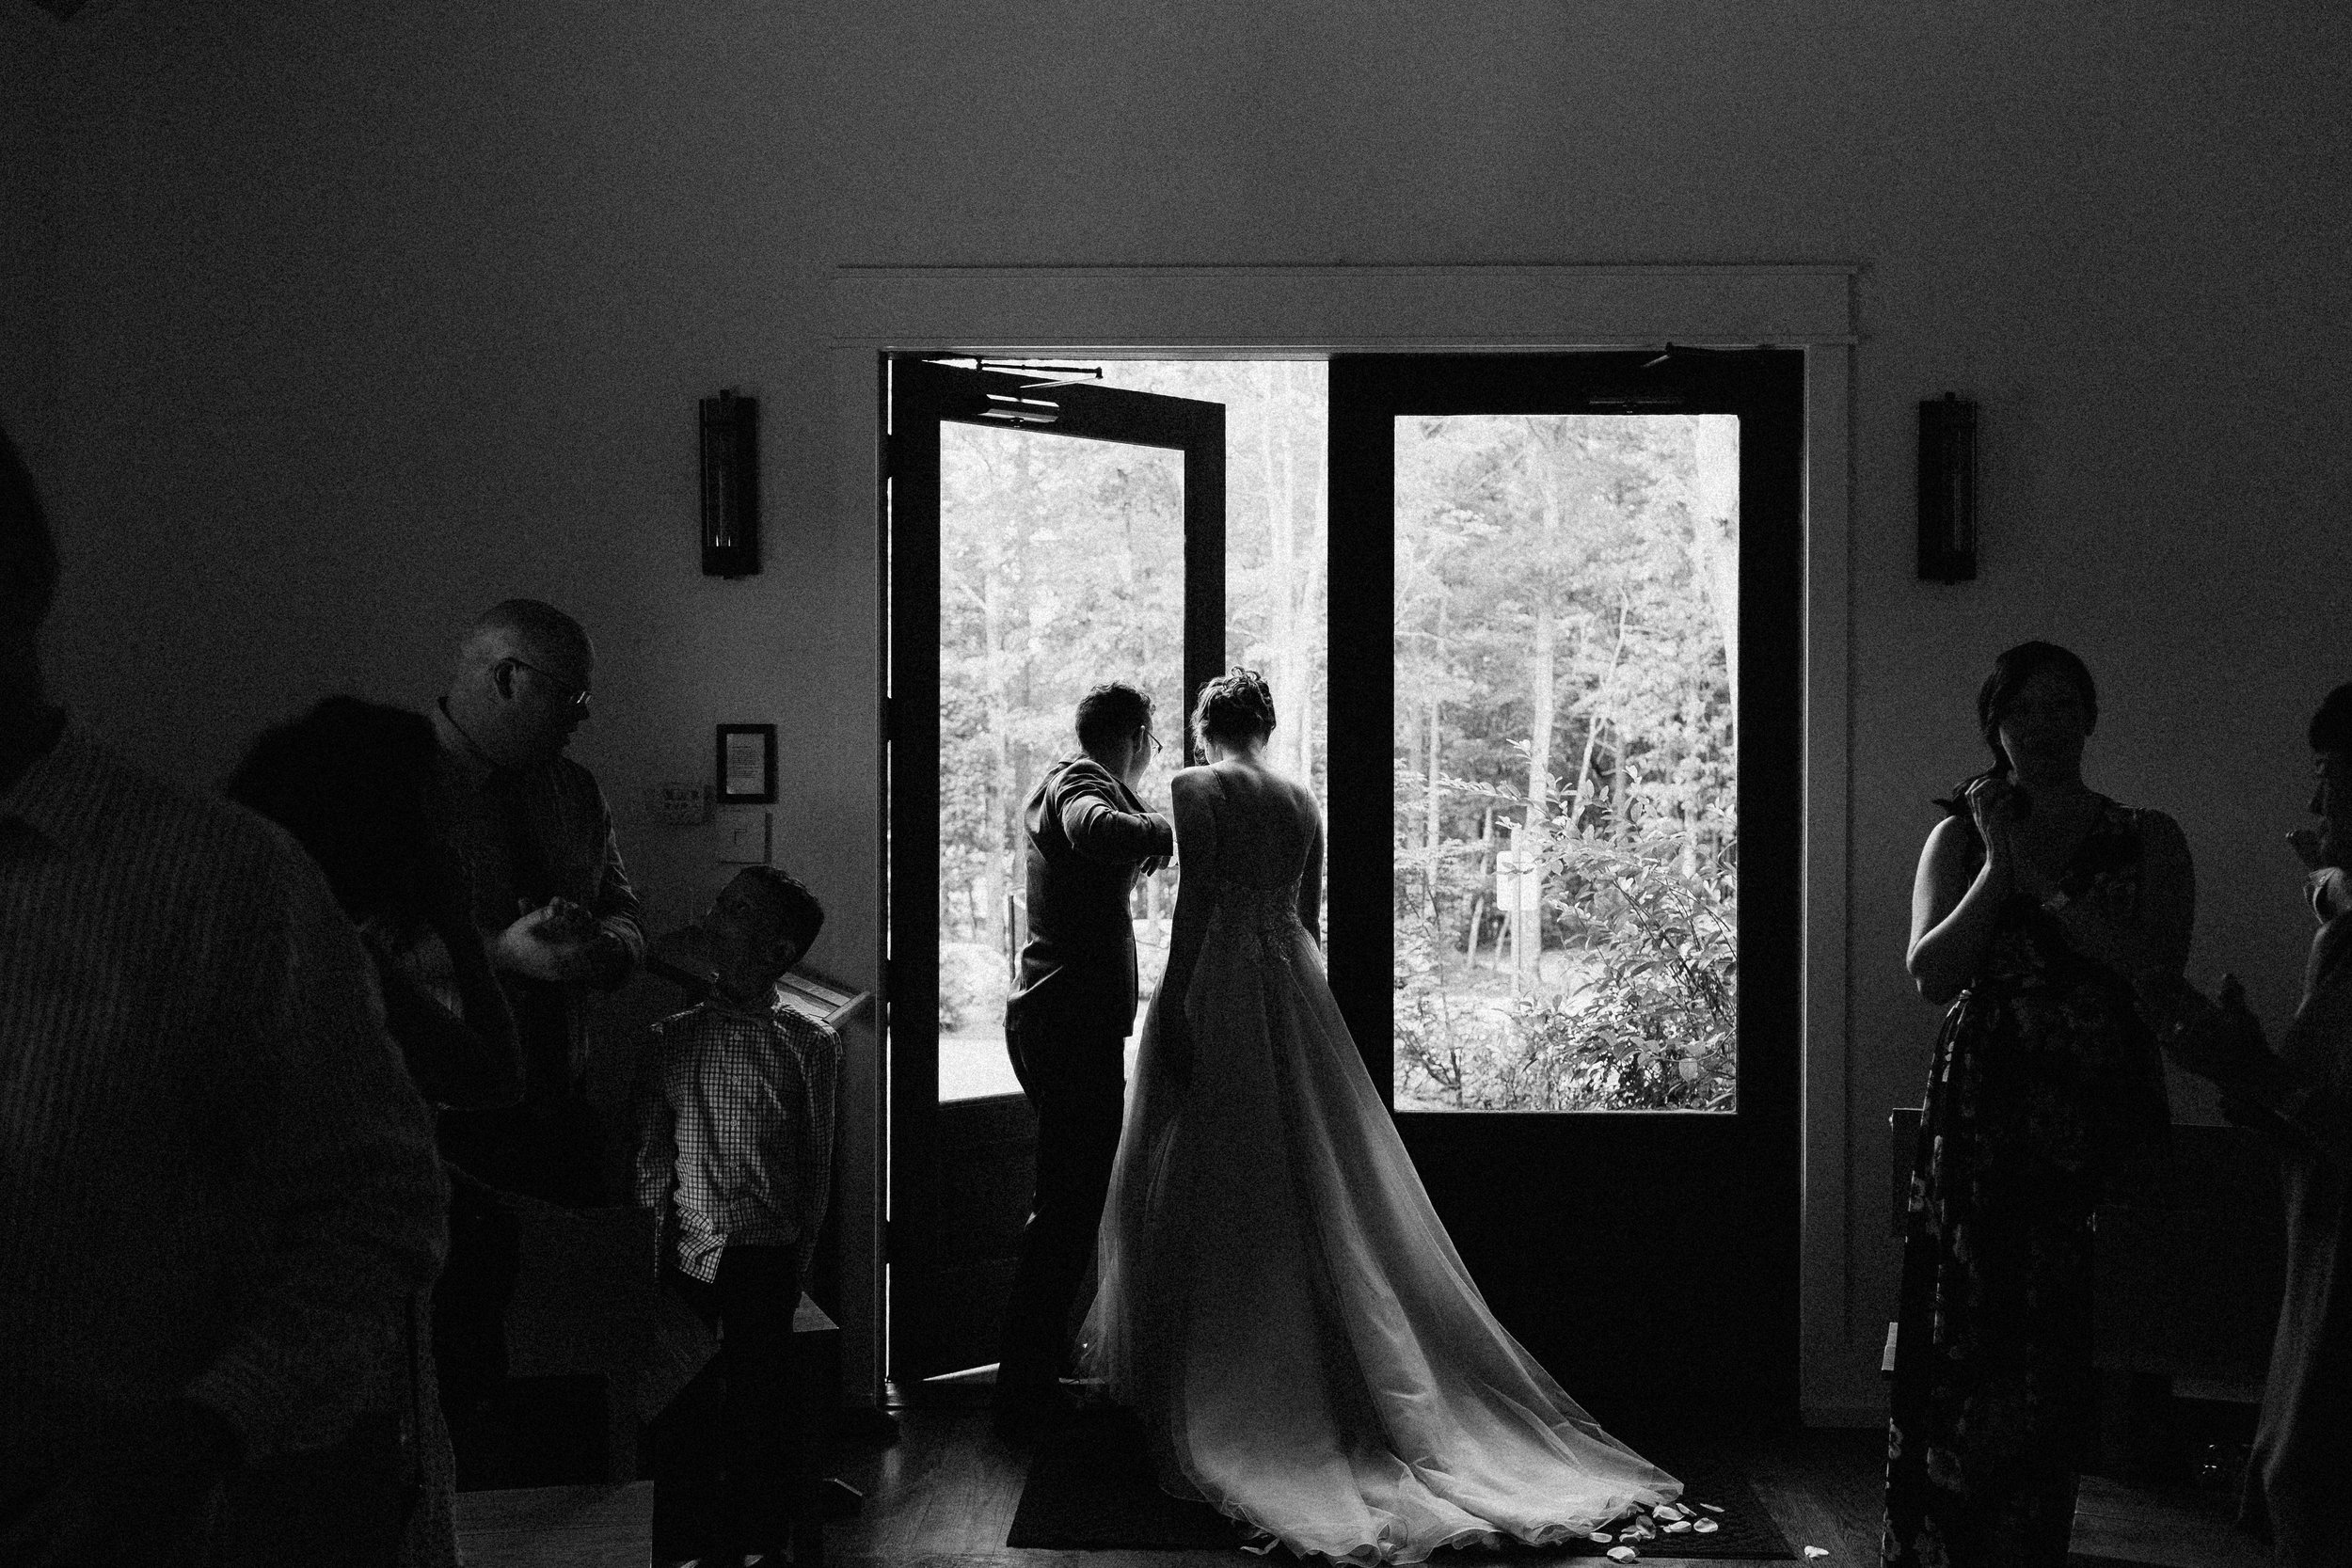 dahlonega_juliette_chapel_photojournalism_atlanta_wedding_photographers_1796.jpg